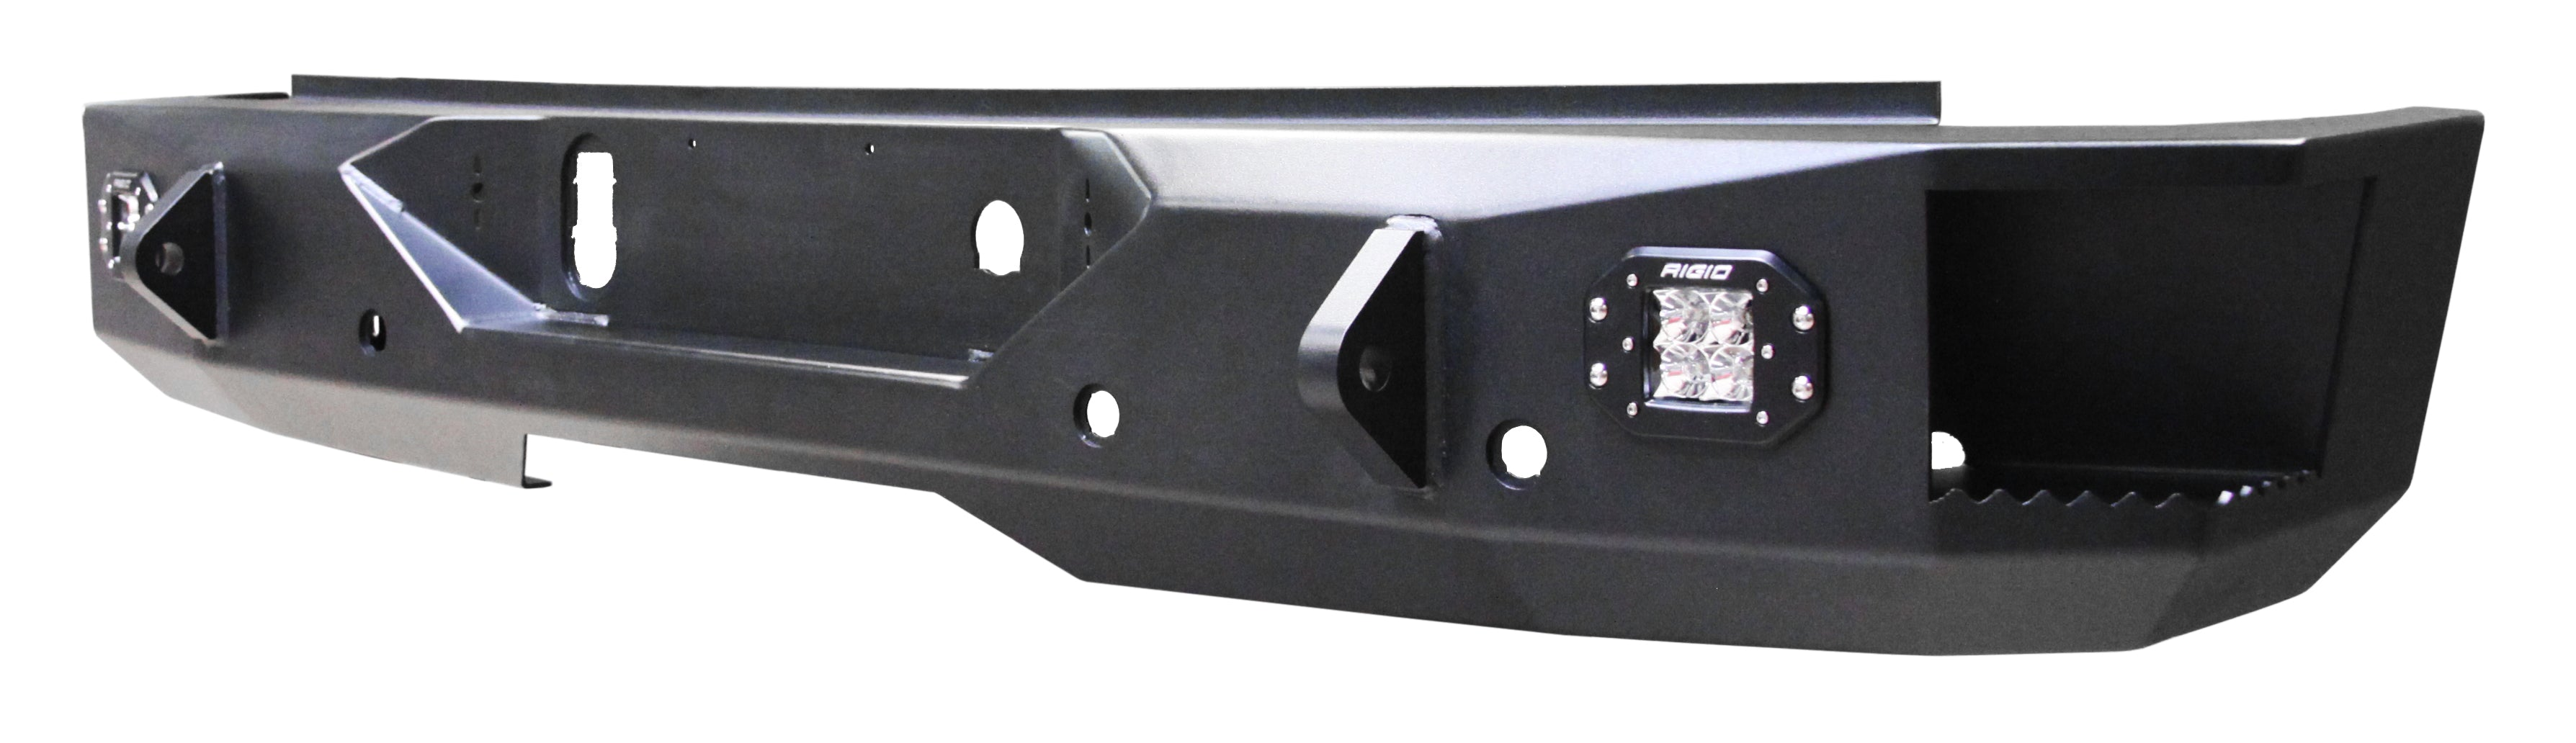 GMC - 2500/3500 (2007-2010) Rear Bumper